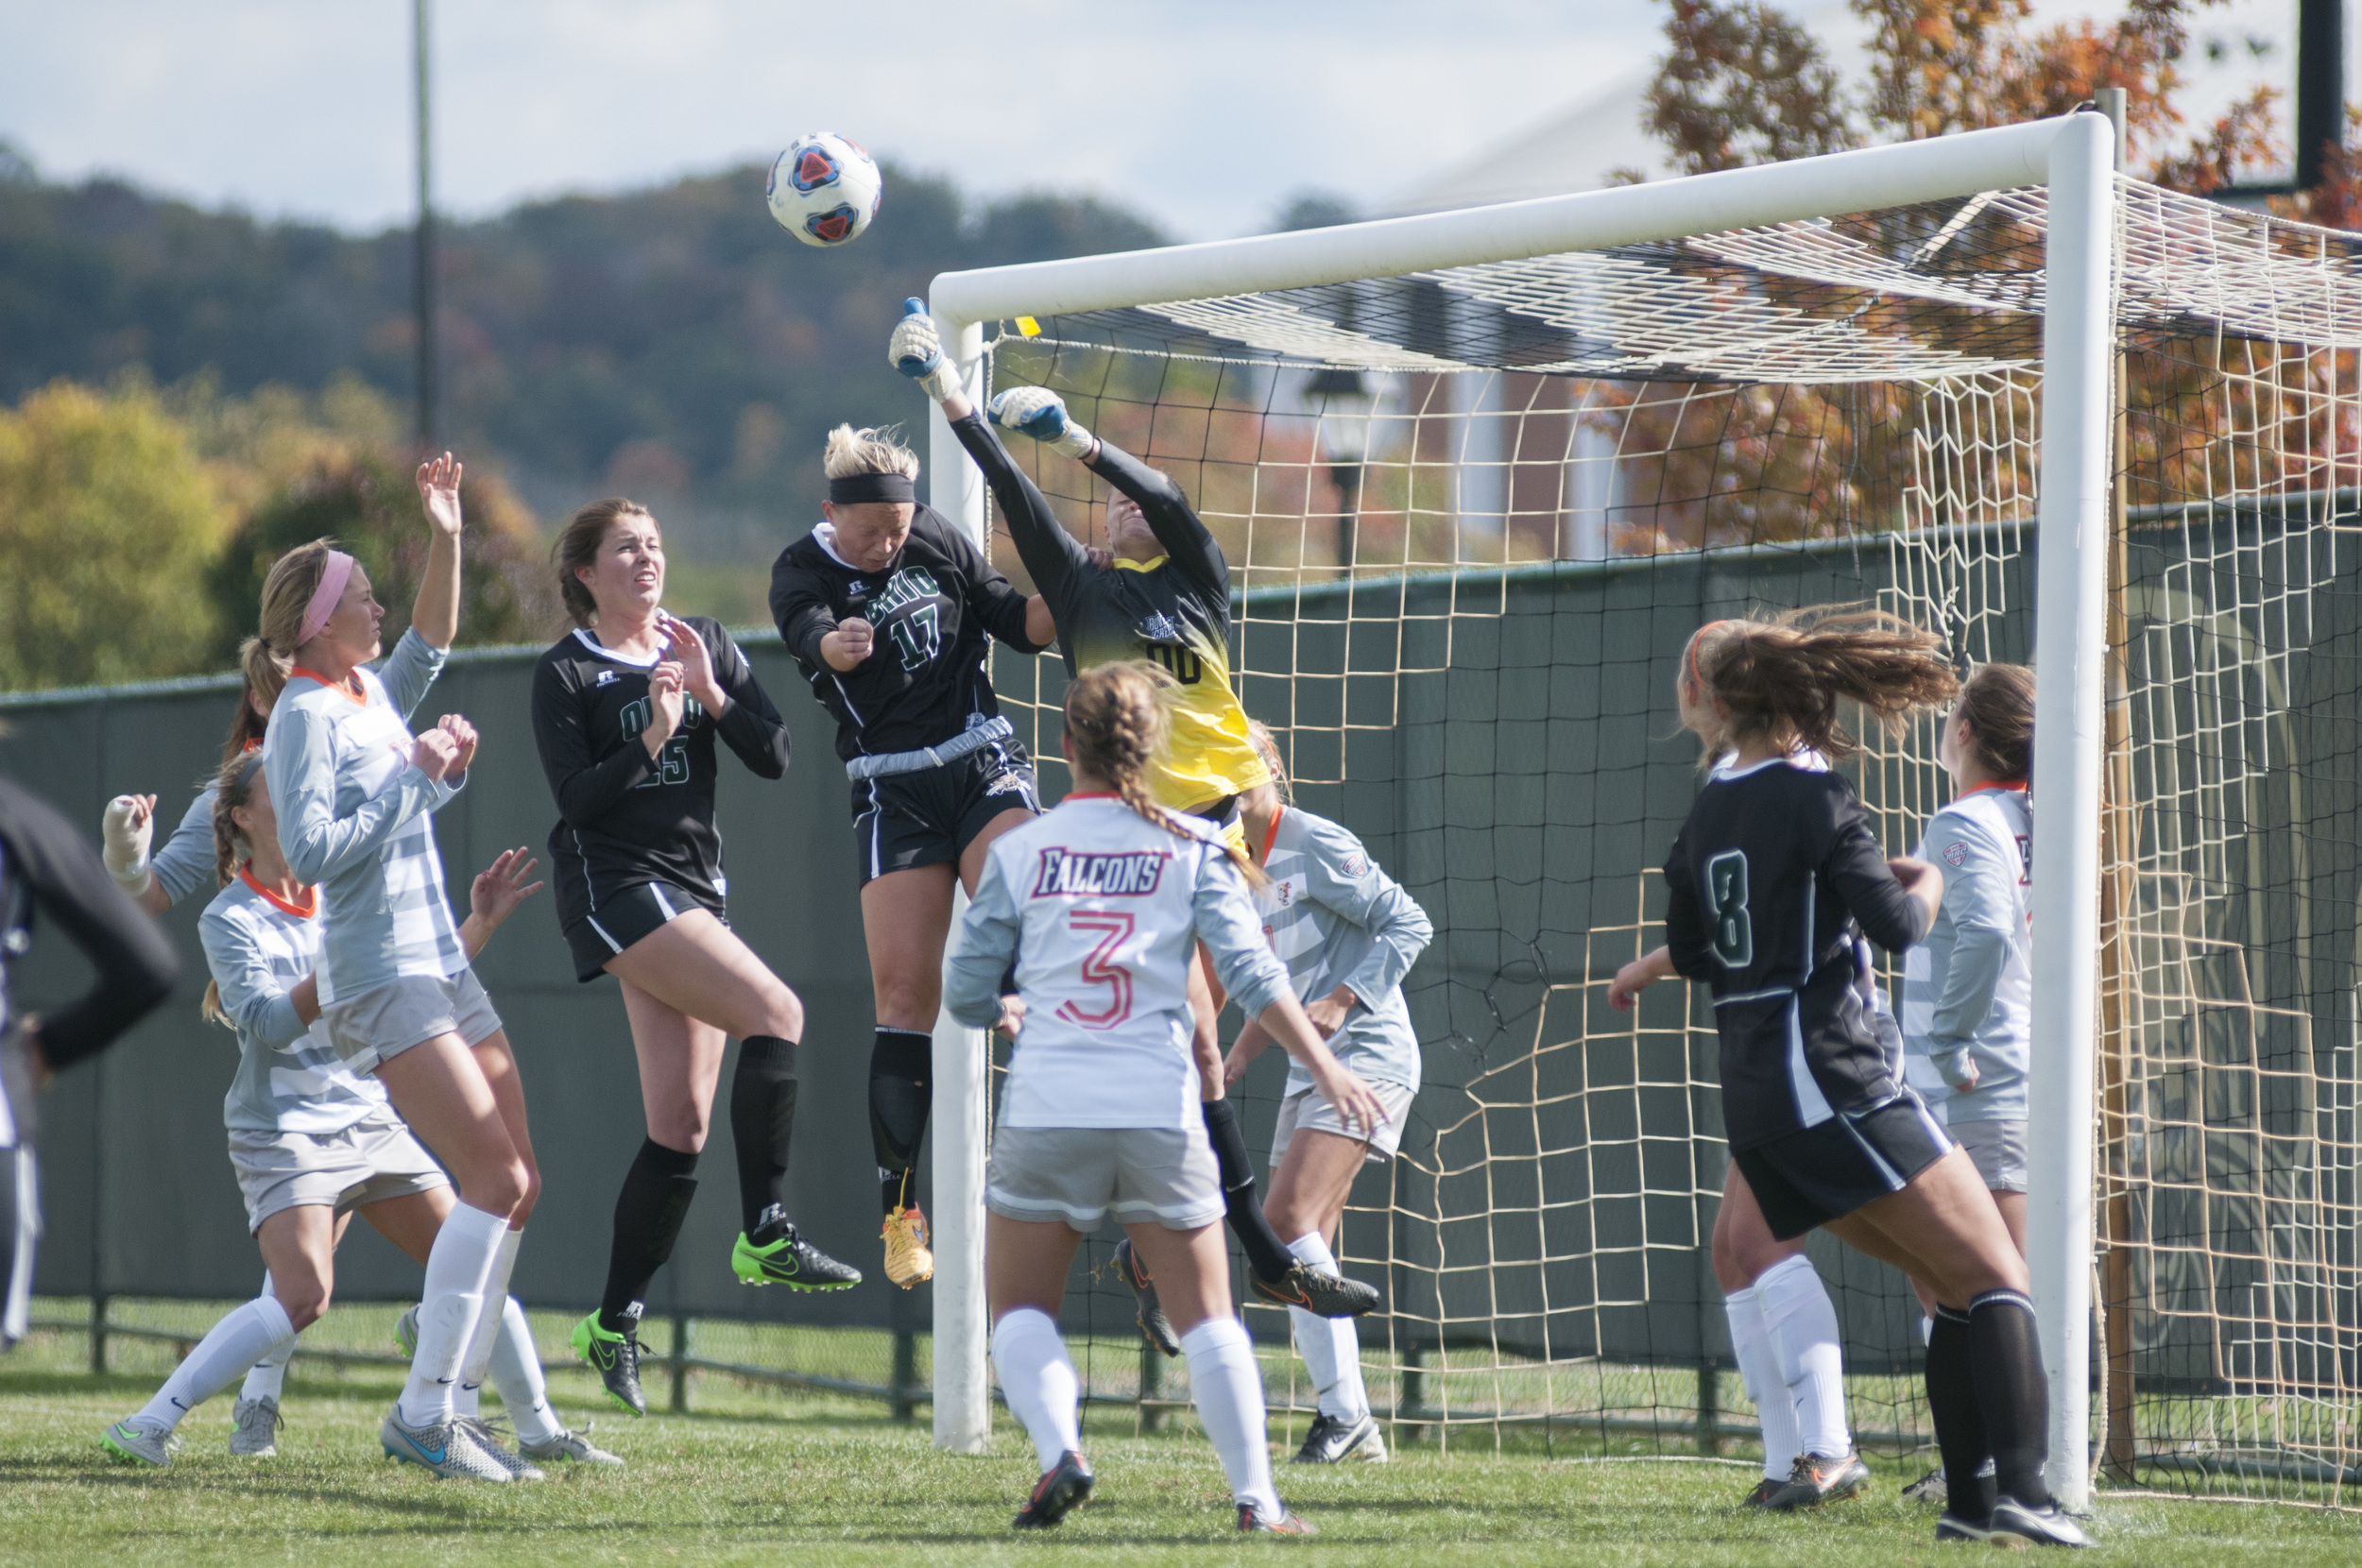 Ohio University's Hannah Jagers headbutts the ball after an Ohio corner-kick during a game on Sunday October 18, 2015 at the OU soccer fields in Athens, Ohio.